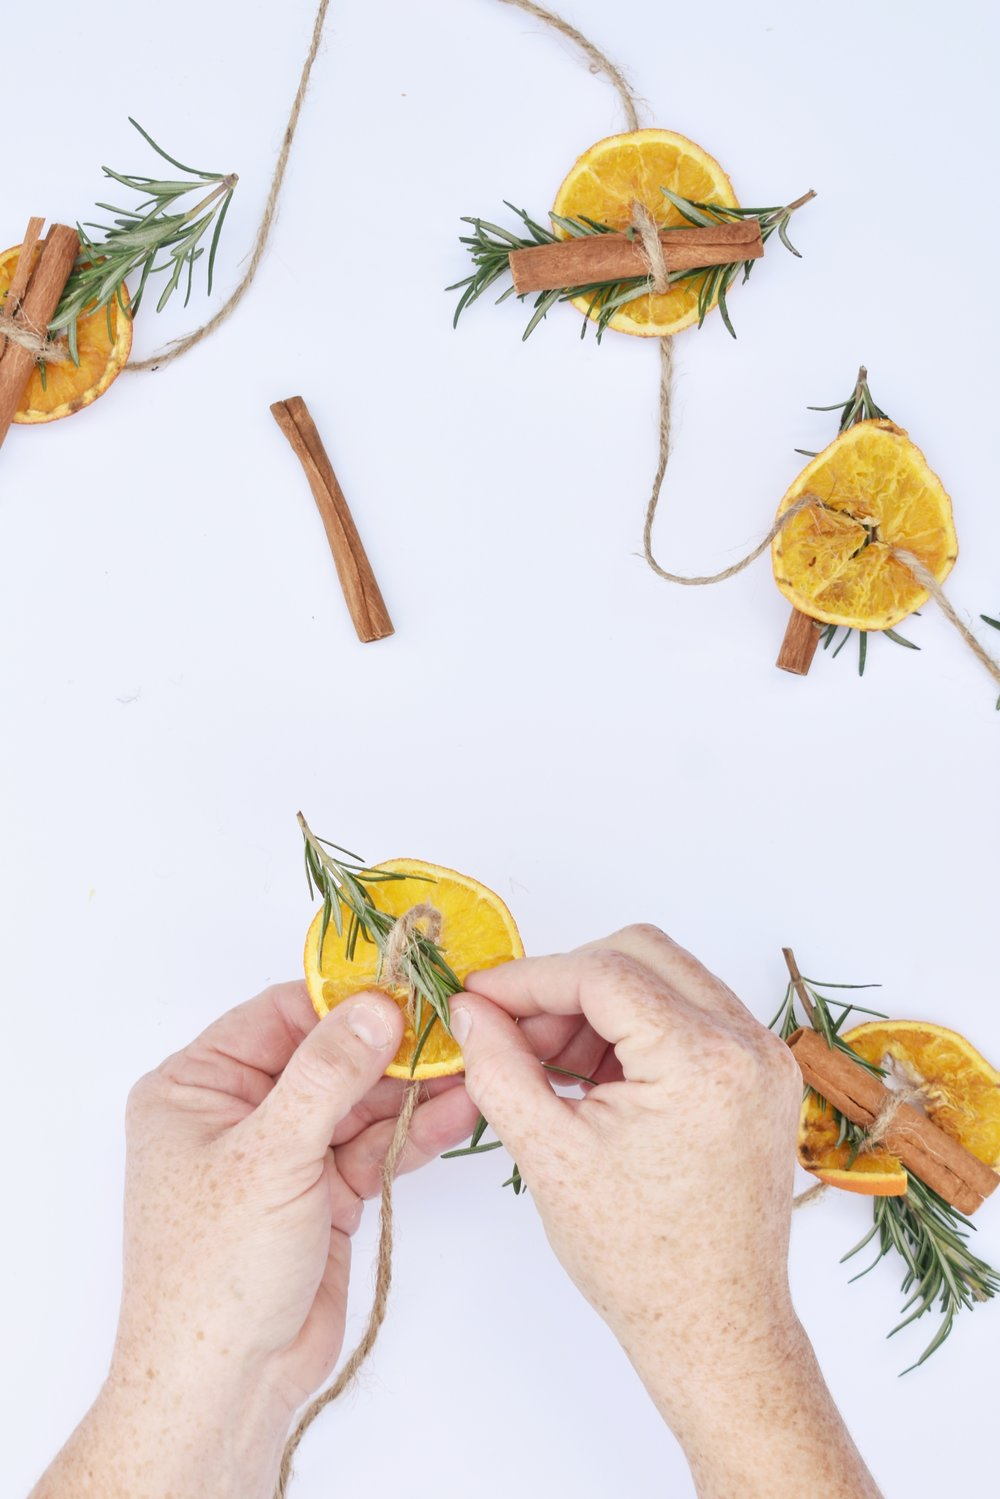 DIY Orange Garland with Rosemary and Cinnamon Sticks for the perfect Christmas or Thanksgiving Homemade Holiday Season